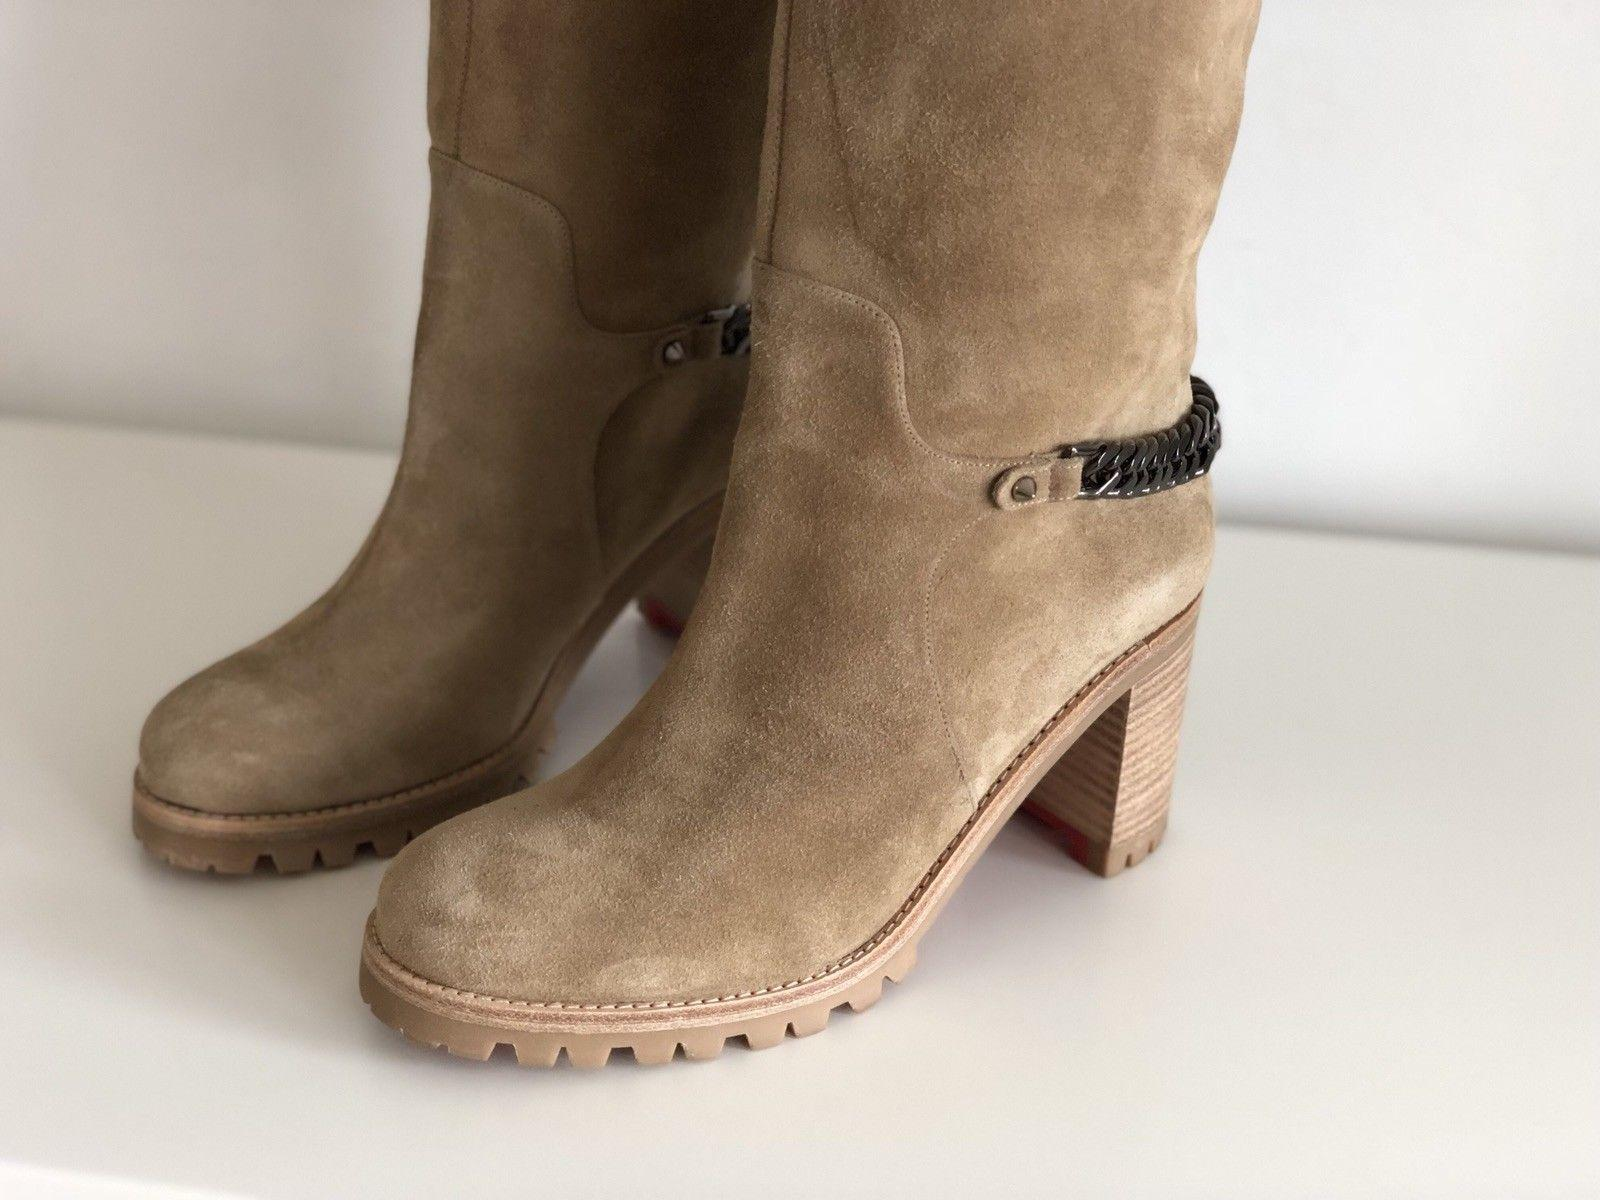 differently ec36c f8bbb Christian Louboutin Louboutin Louboutin Taupe Suede Cate ...